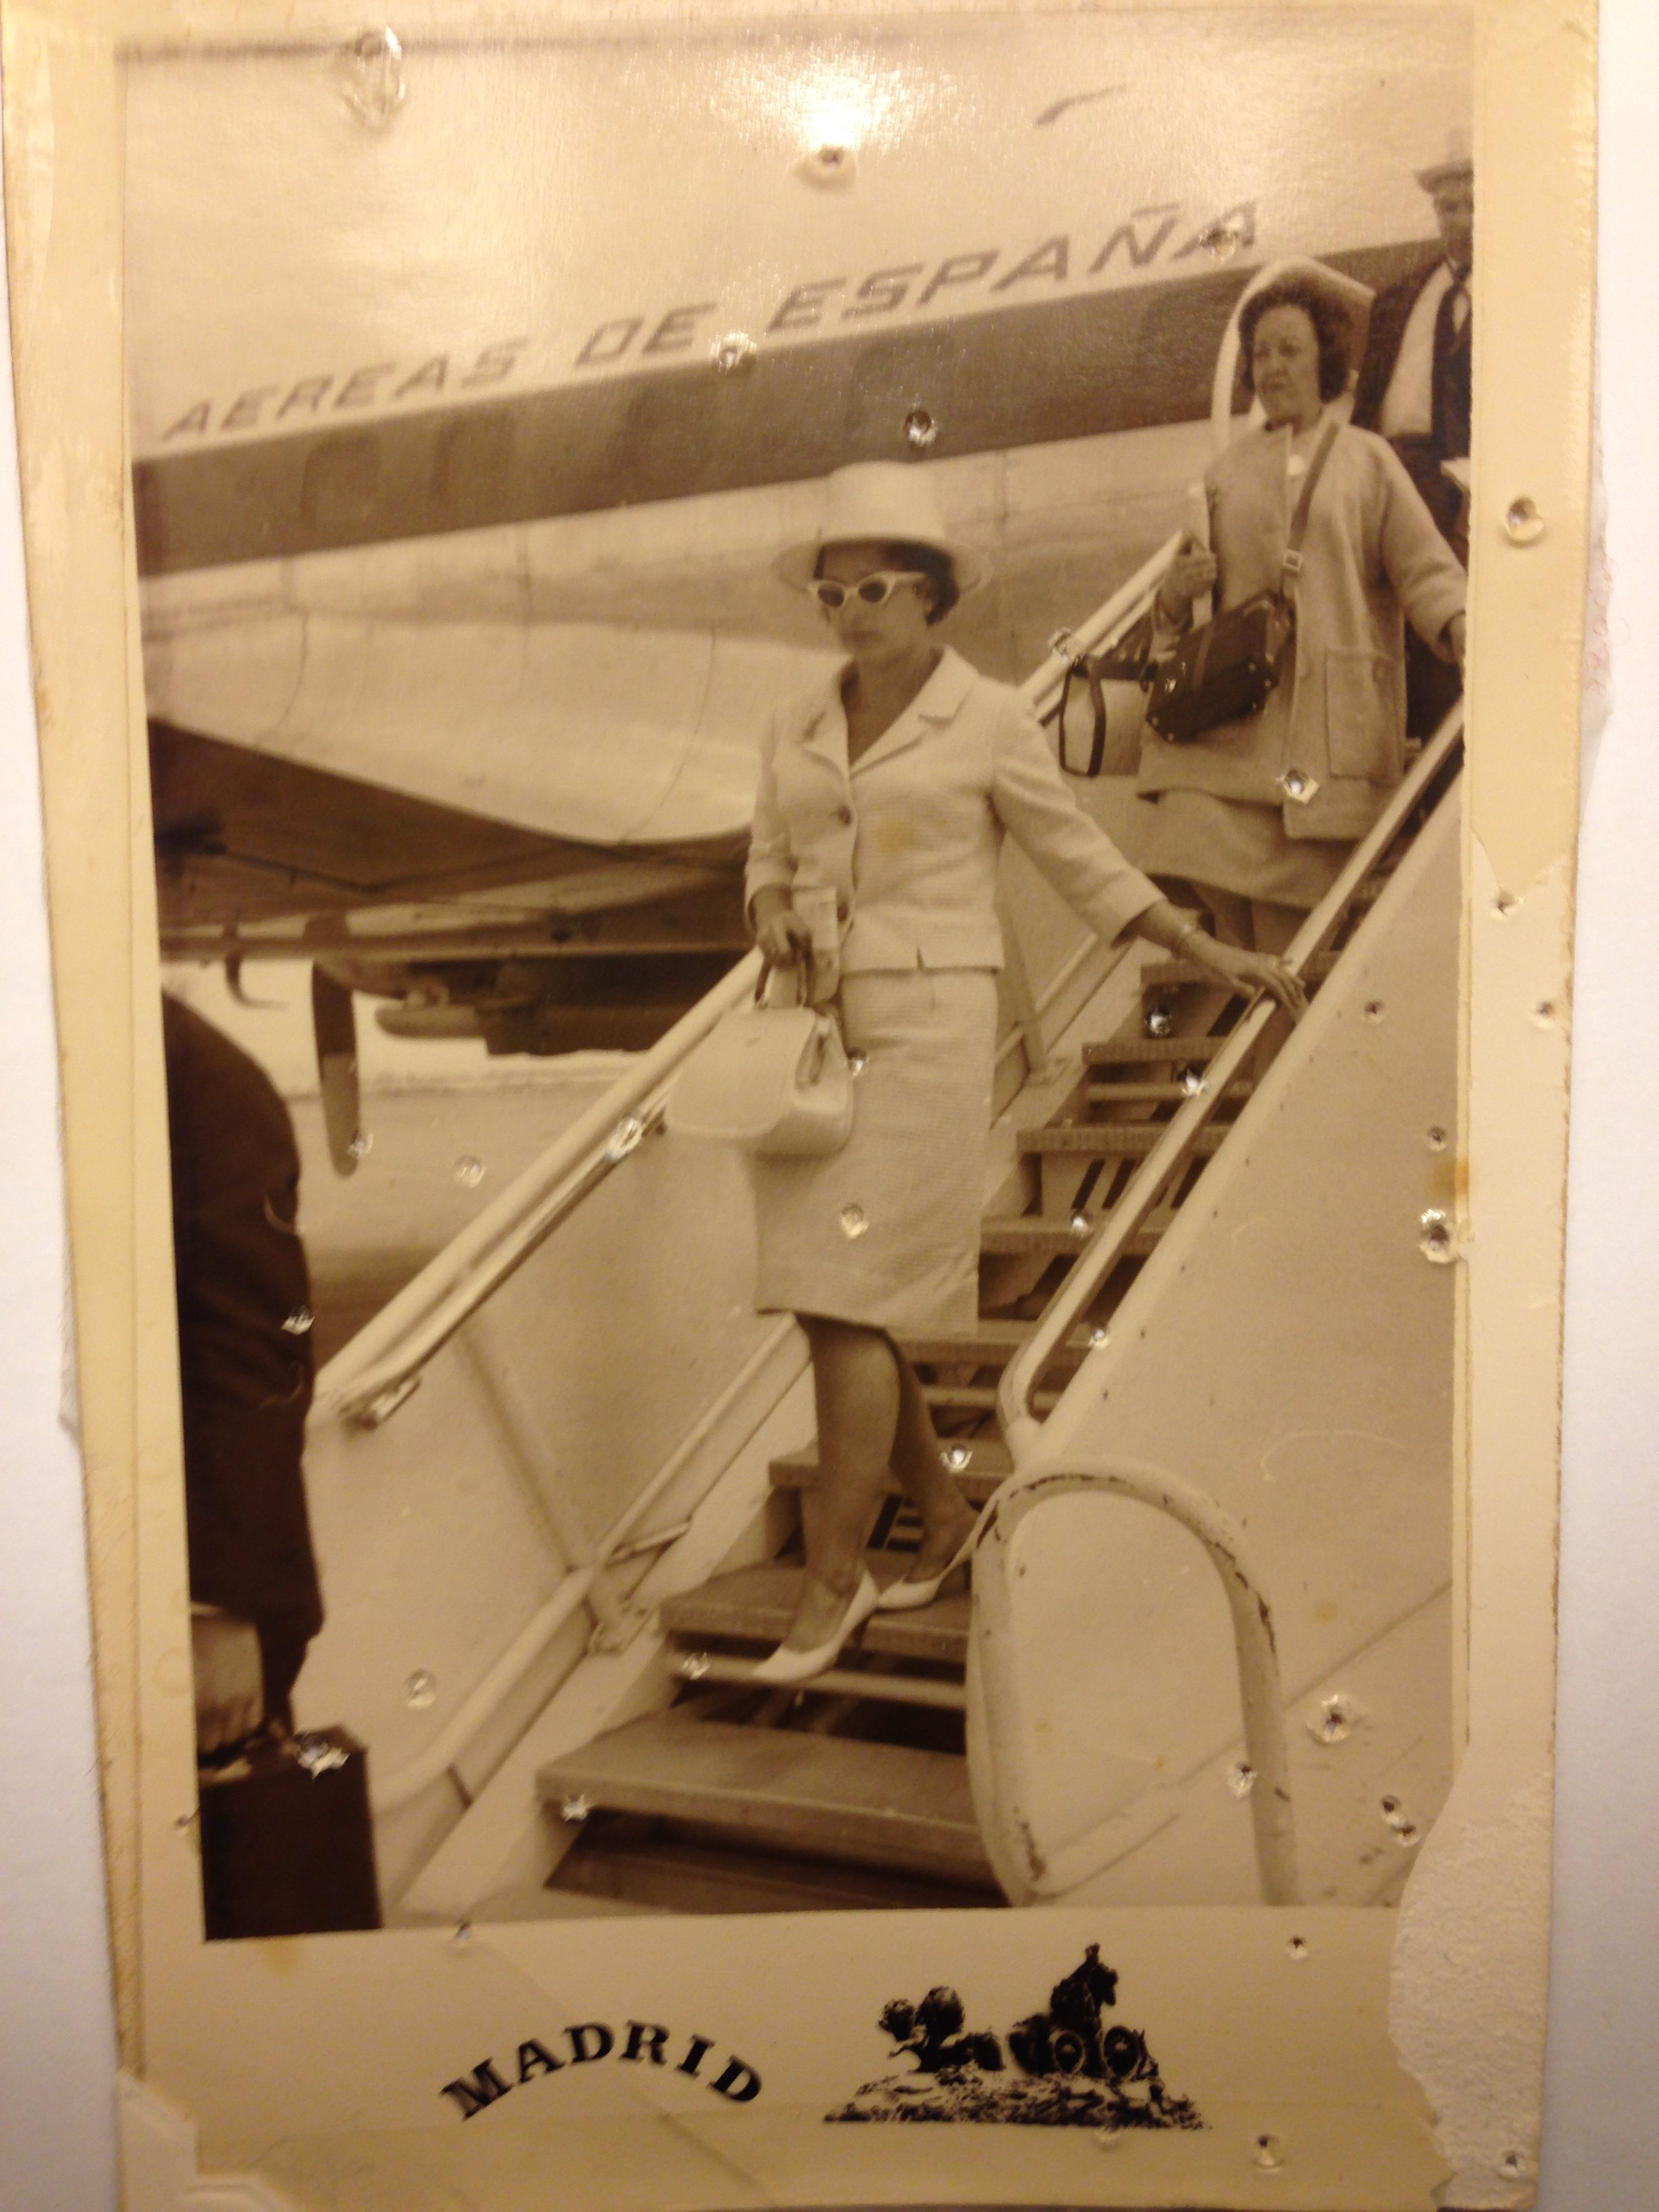 Founder Fran Beard on her way to Madrid